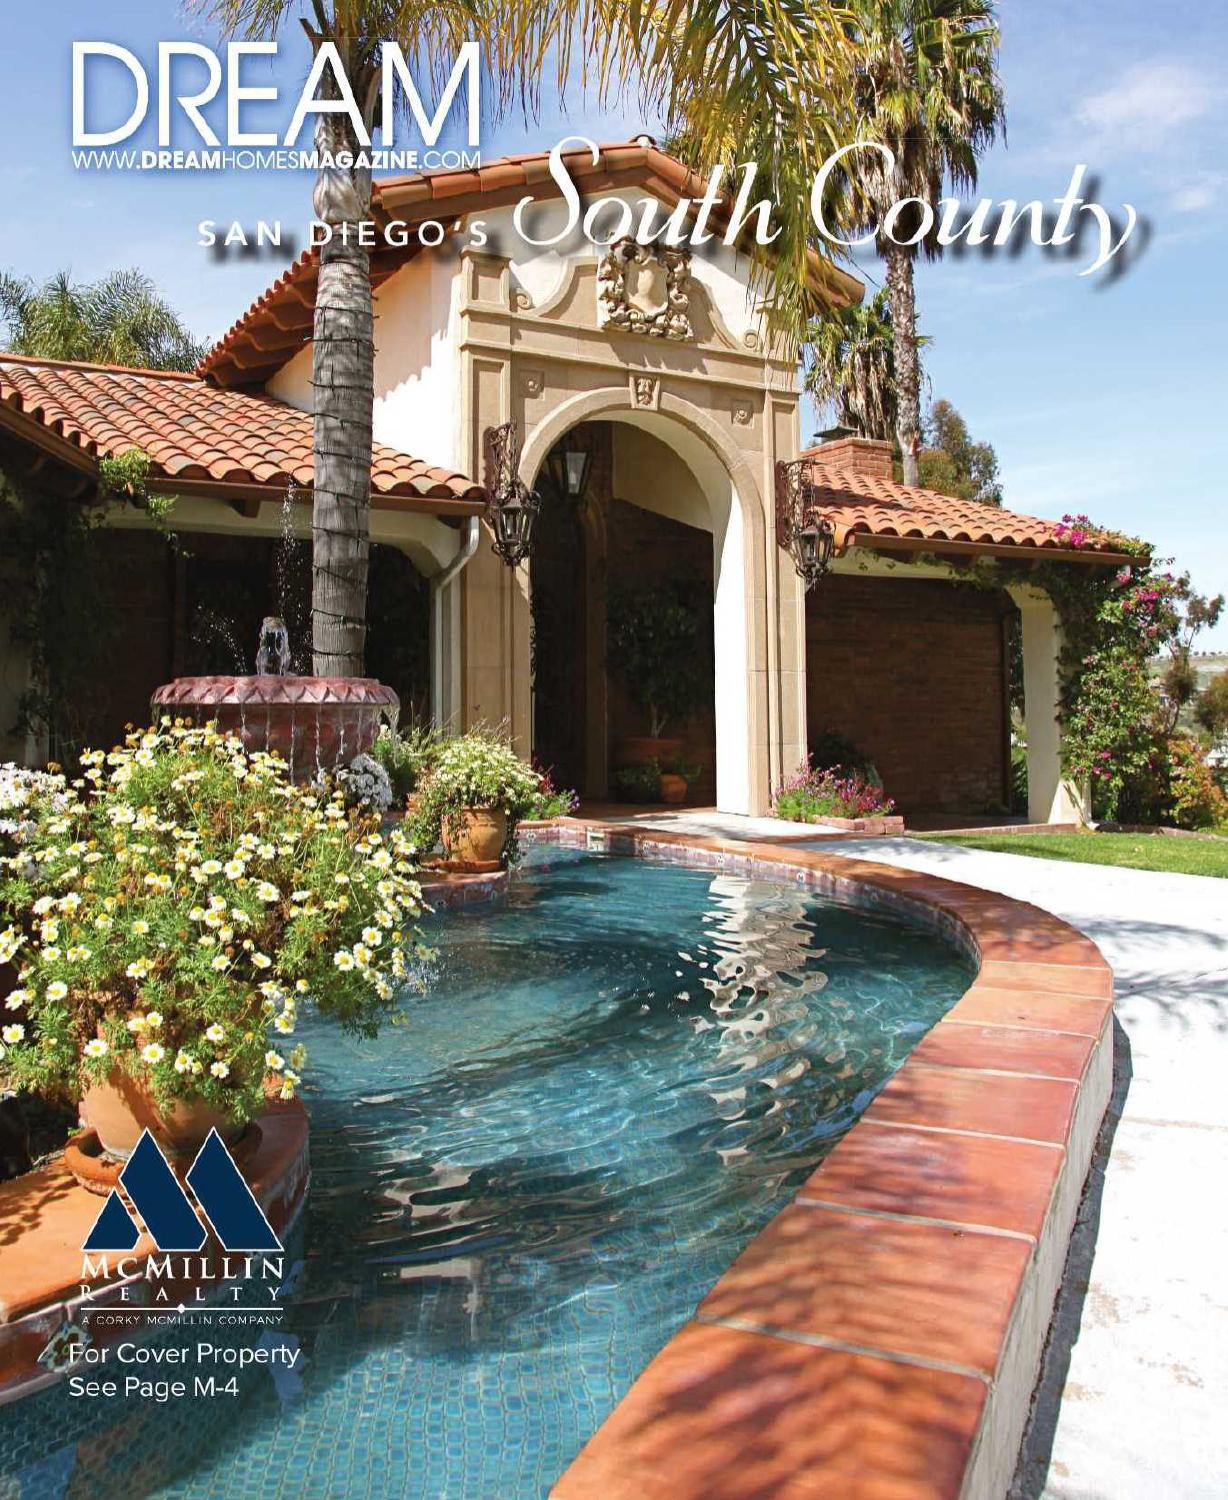 Dream homes magazine south county edition by better homes for Dream homes magazine